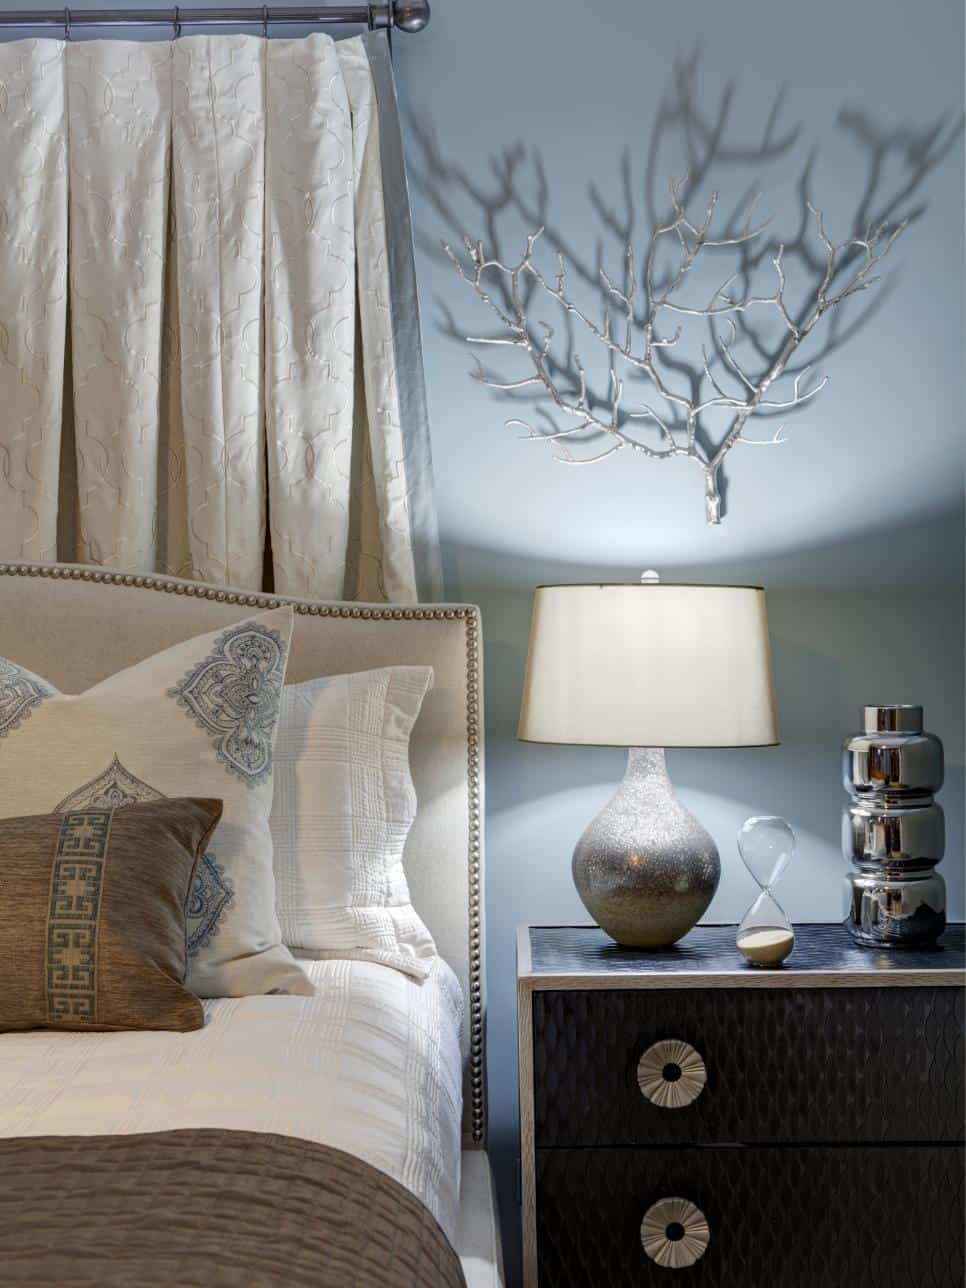 Metallic wall hanging in a bedroom by Erica Lugbill